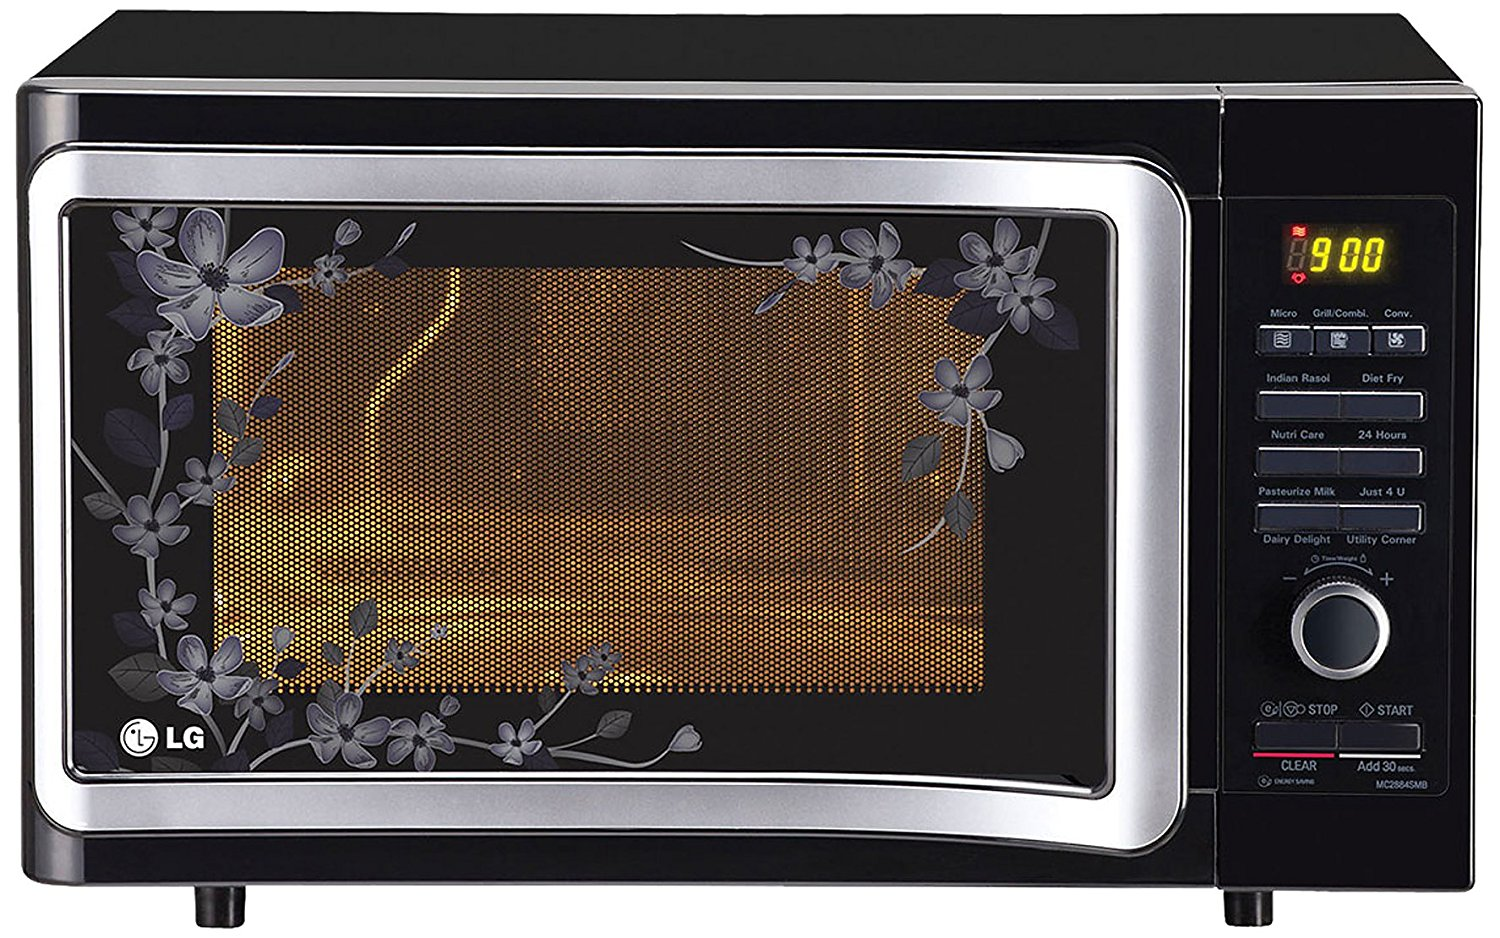 black floral convection microwave oven from LG